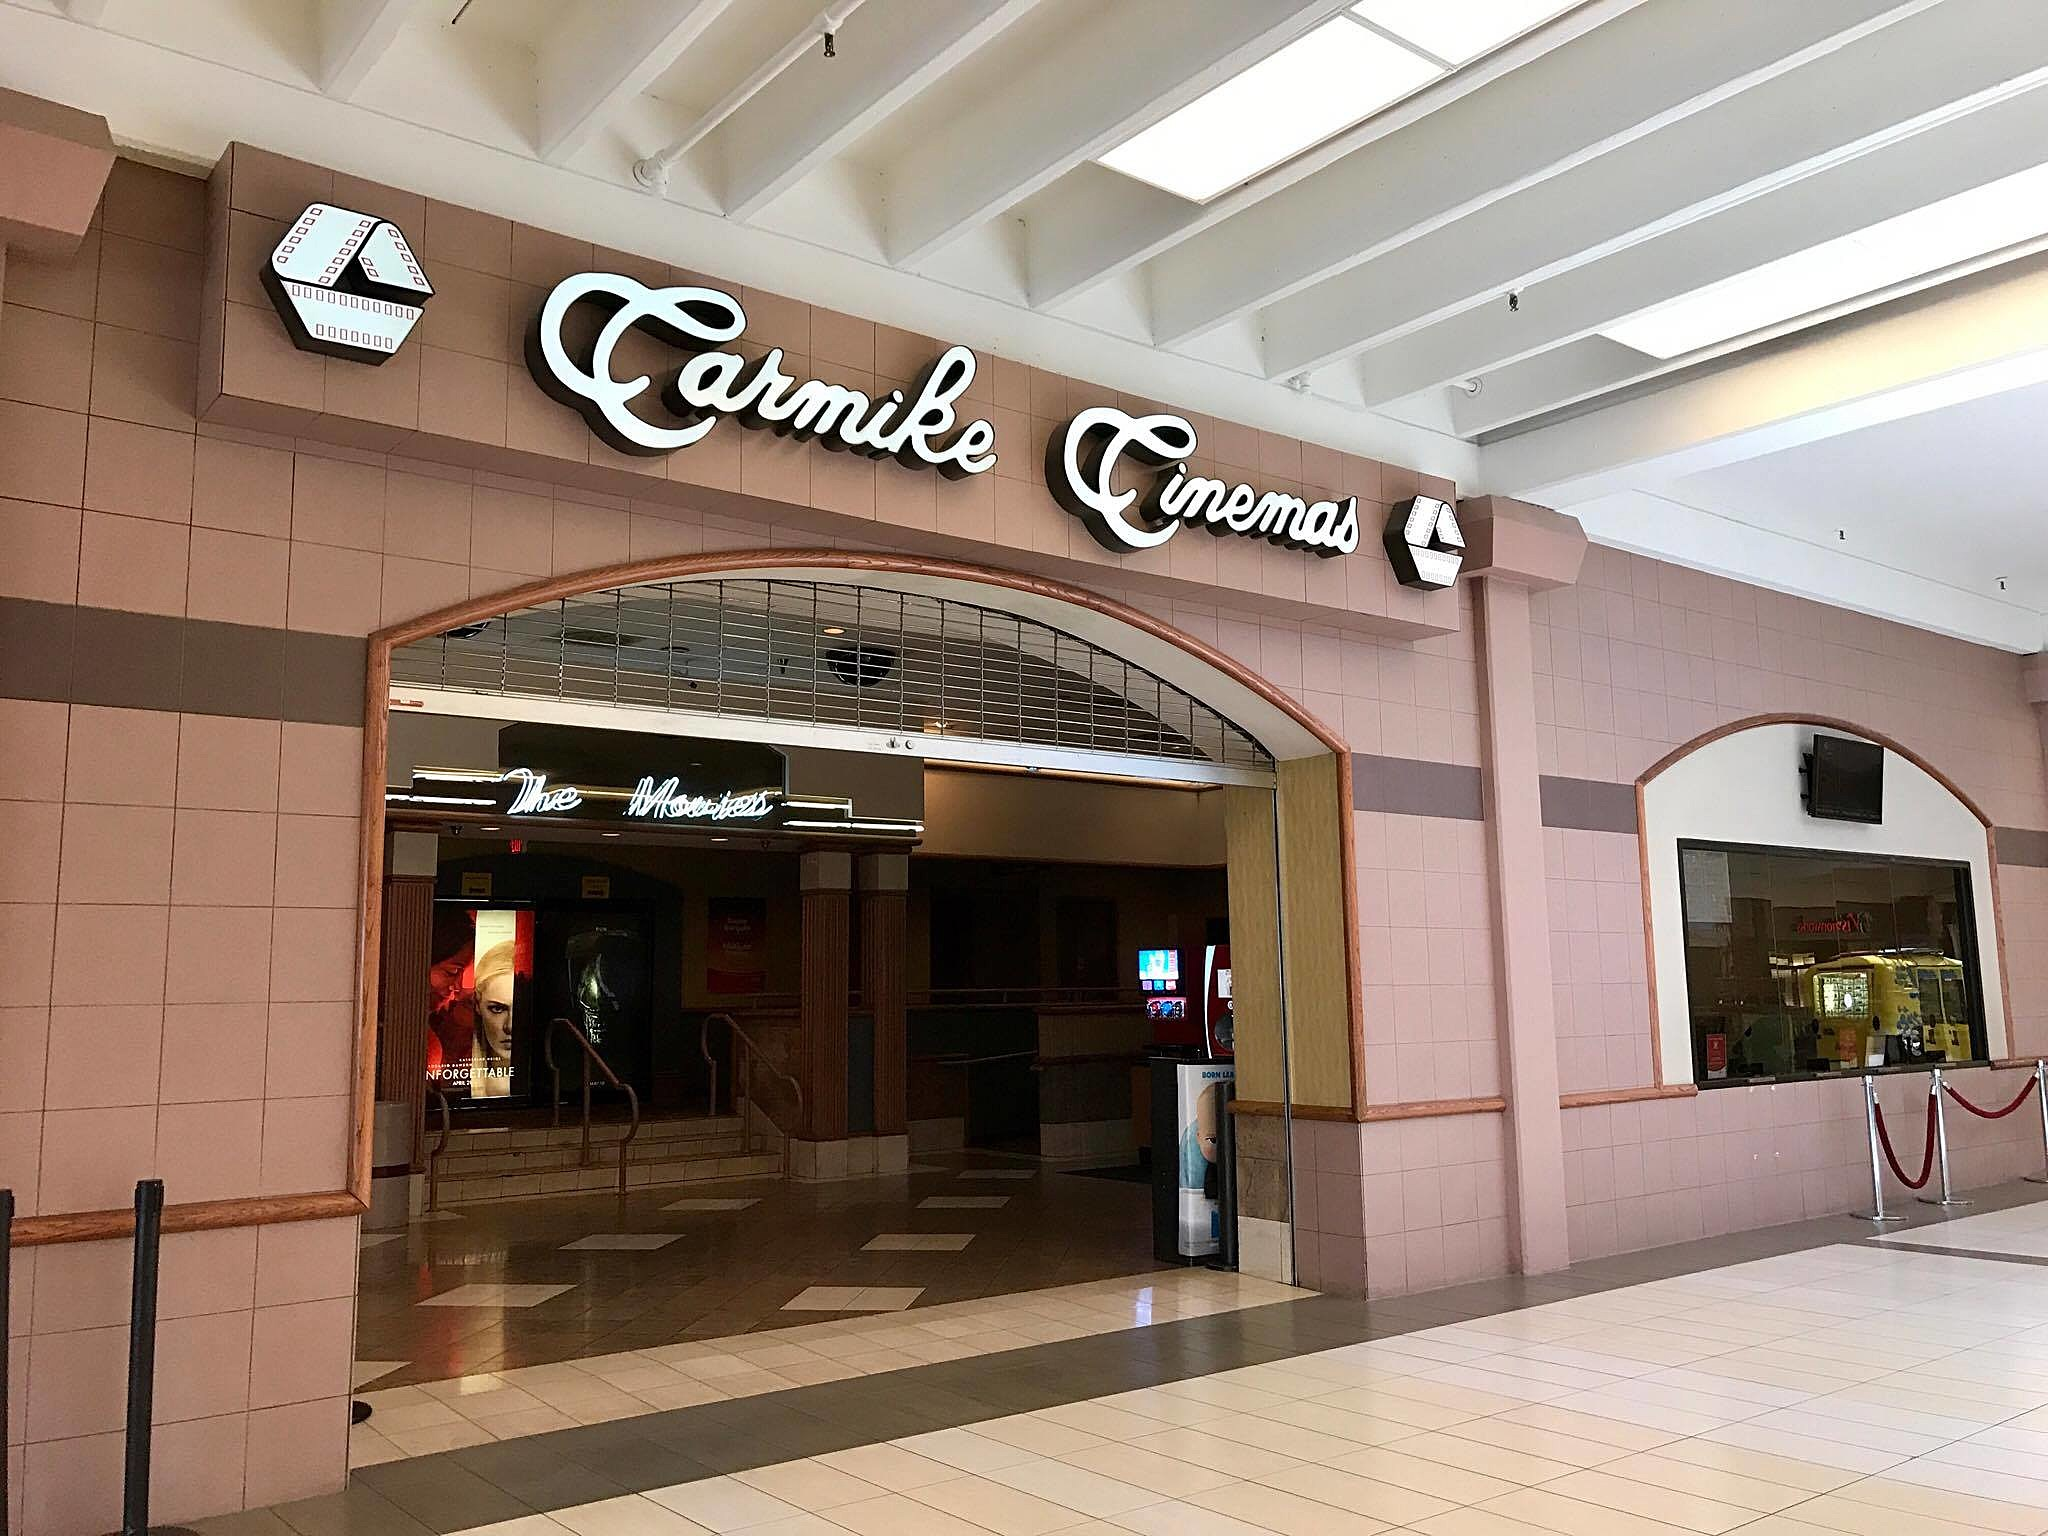 Mall theater getting upgrades